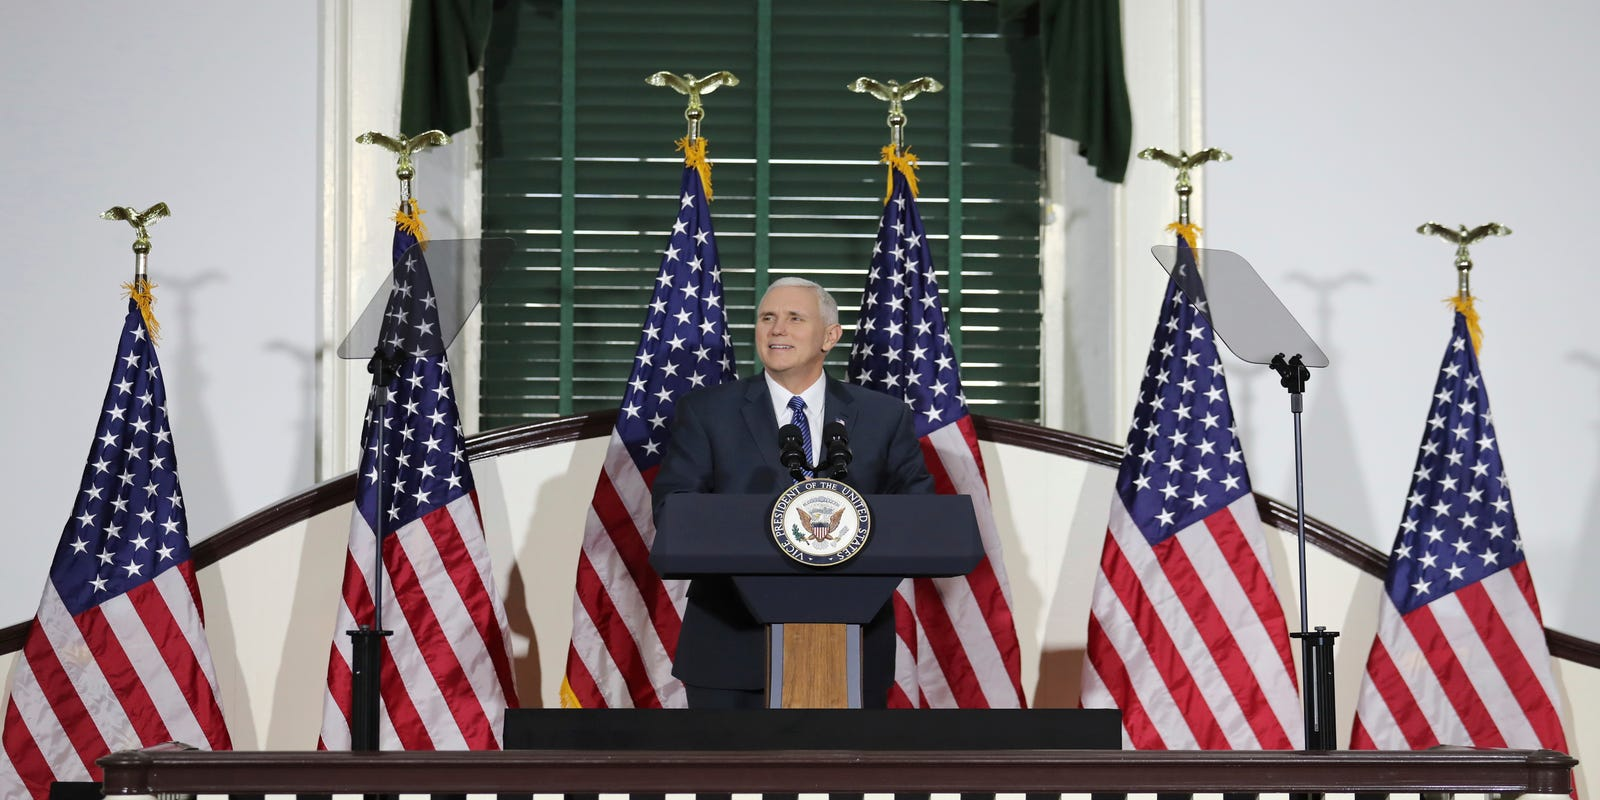 Russ Pulliam: Mike Pence's search for piety and power